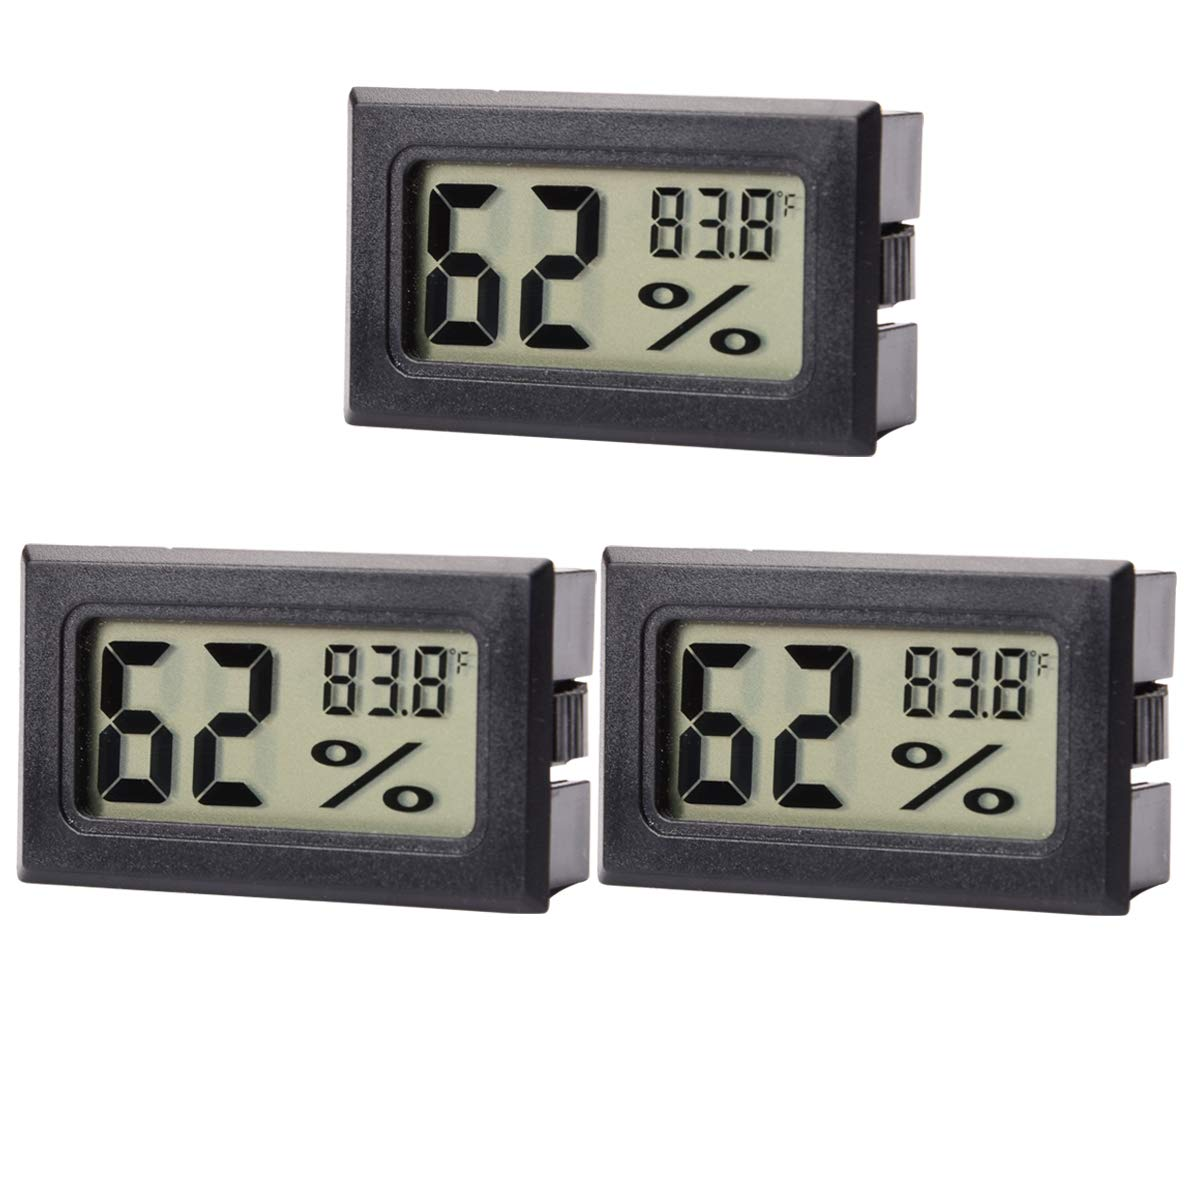 AUTIDEFY Mini Digital Electronic Temperature Humidity Meters Gauge Indoor Thermometer Hygrometer LCD Display Fahrenheit (℉) (3 Pack) by AUTIDEFY